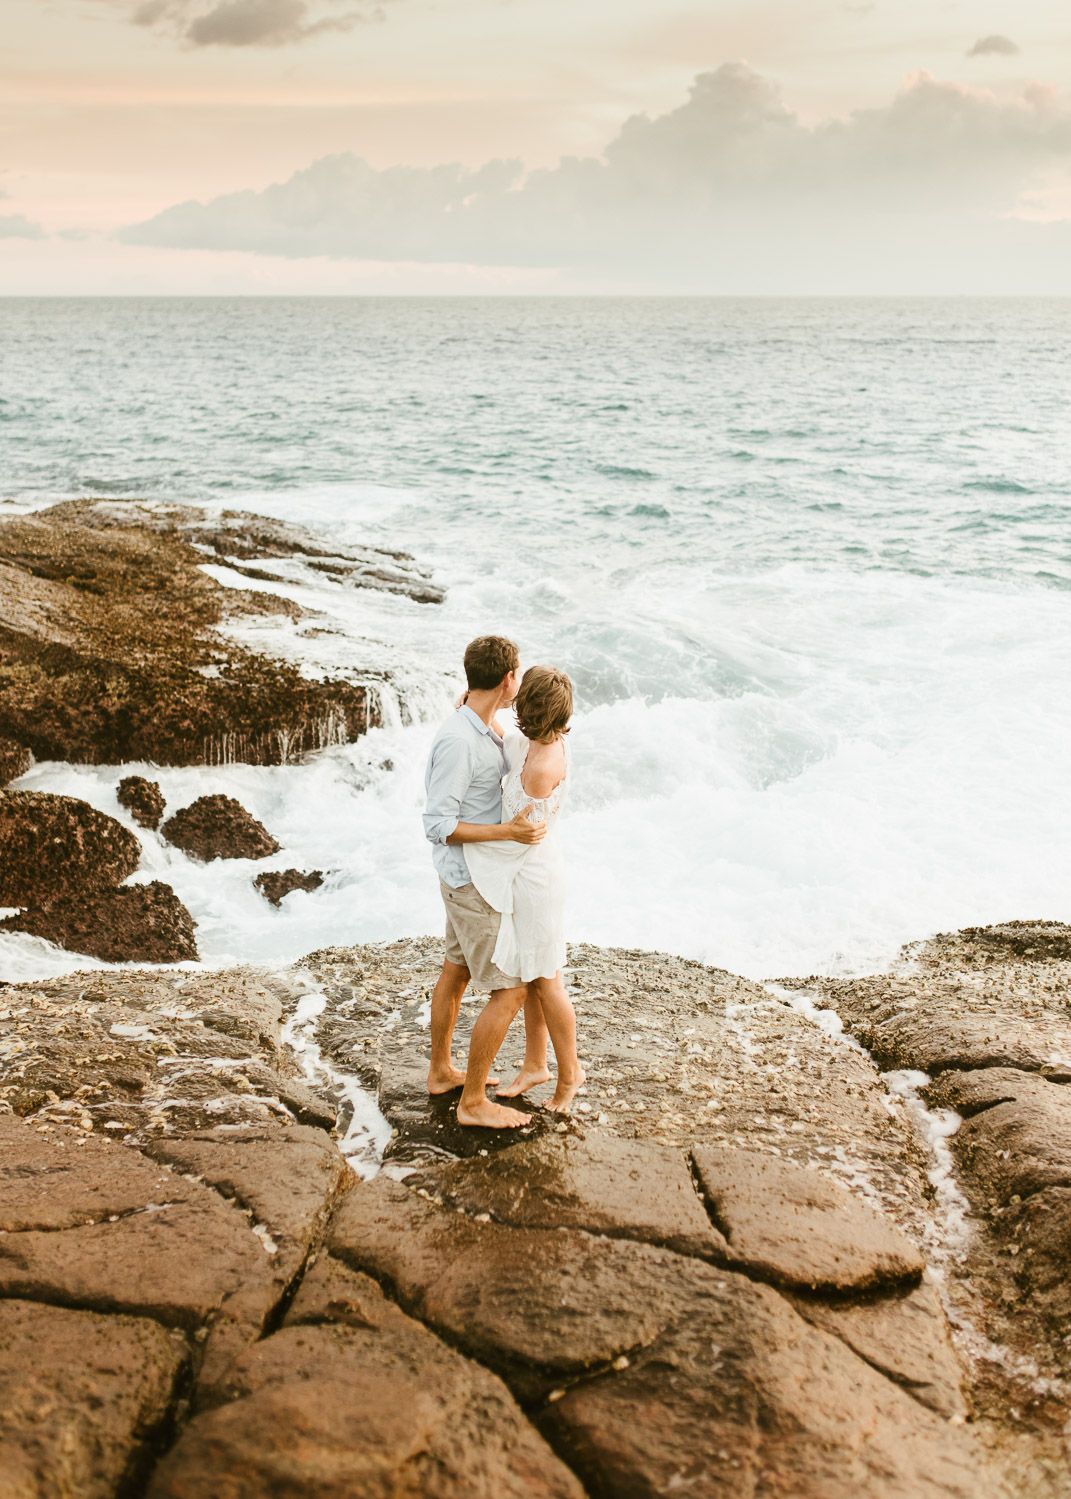 Couple watching waves crash onto rocks in Sri Lanka